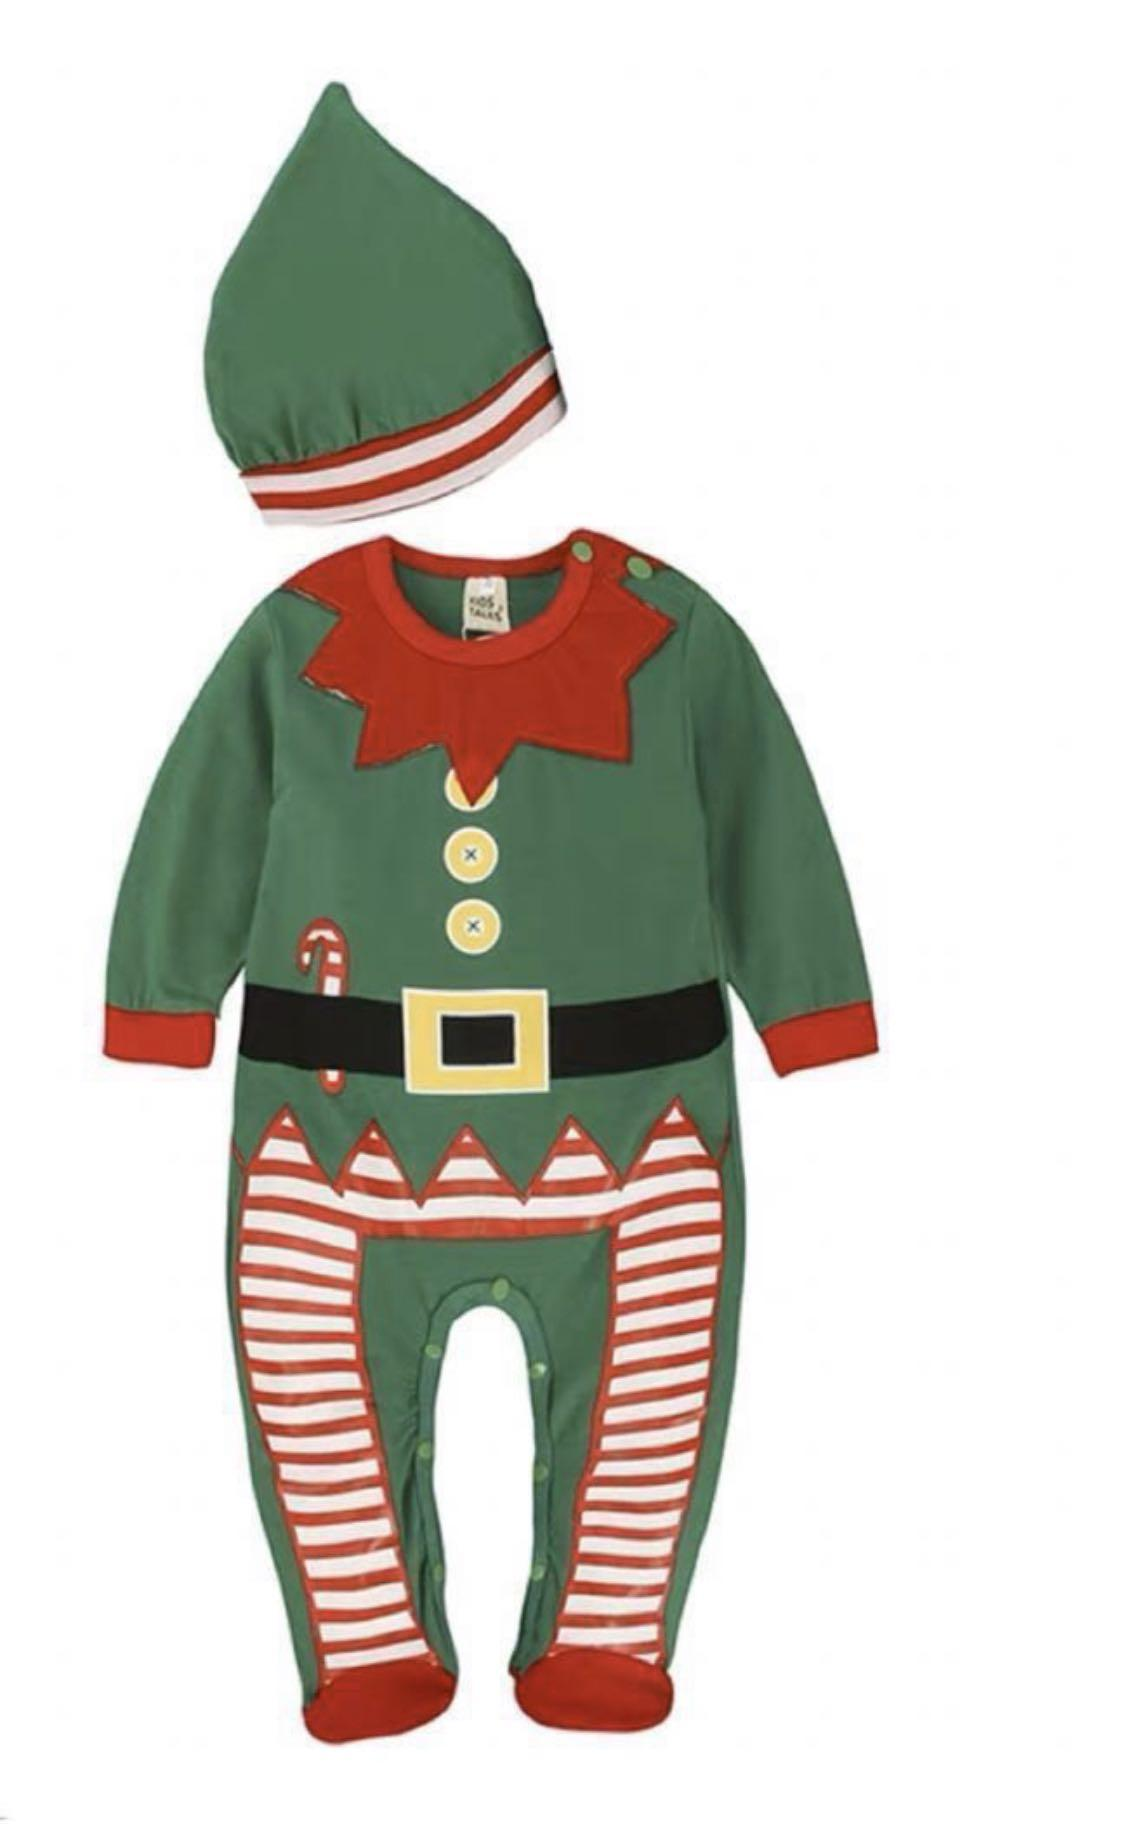 🎄Baby bodysuit BB 連身衫 聖誕🎄Baby bodysuit BB 連身衫 聖誕裝 精靈 衫仔 ELF Christmas party costume size 0-2 years old not mothercare chickee duck Kingkow Ikea 裝 精靈 衫仔 ELF Christmas party costume size 0-2 years old not mothercare chickee Kingkow Ikea spectra pigeon